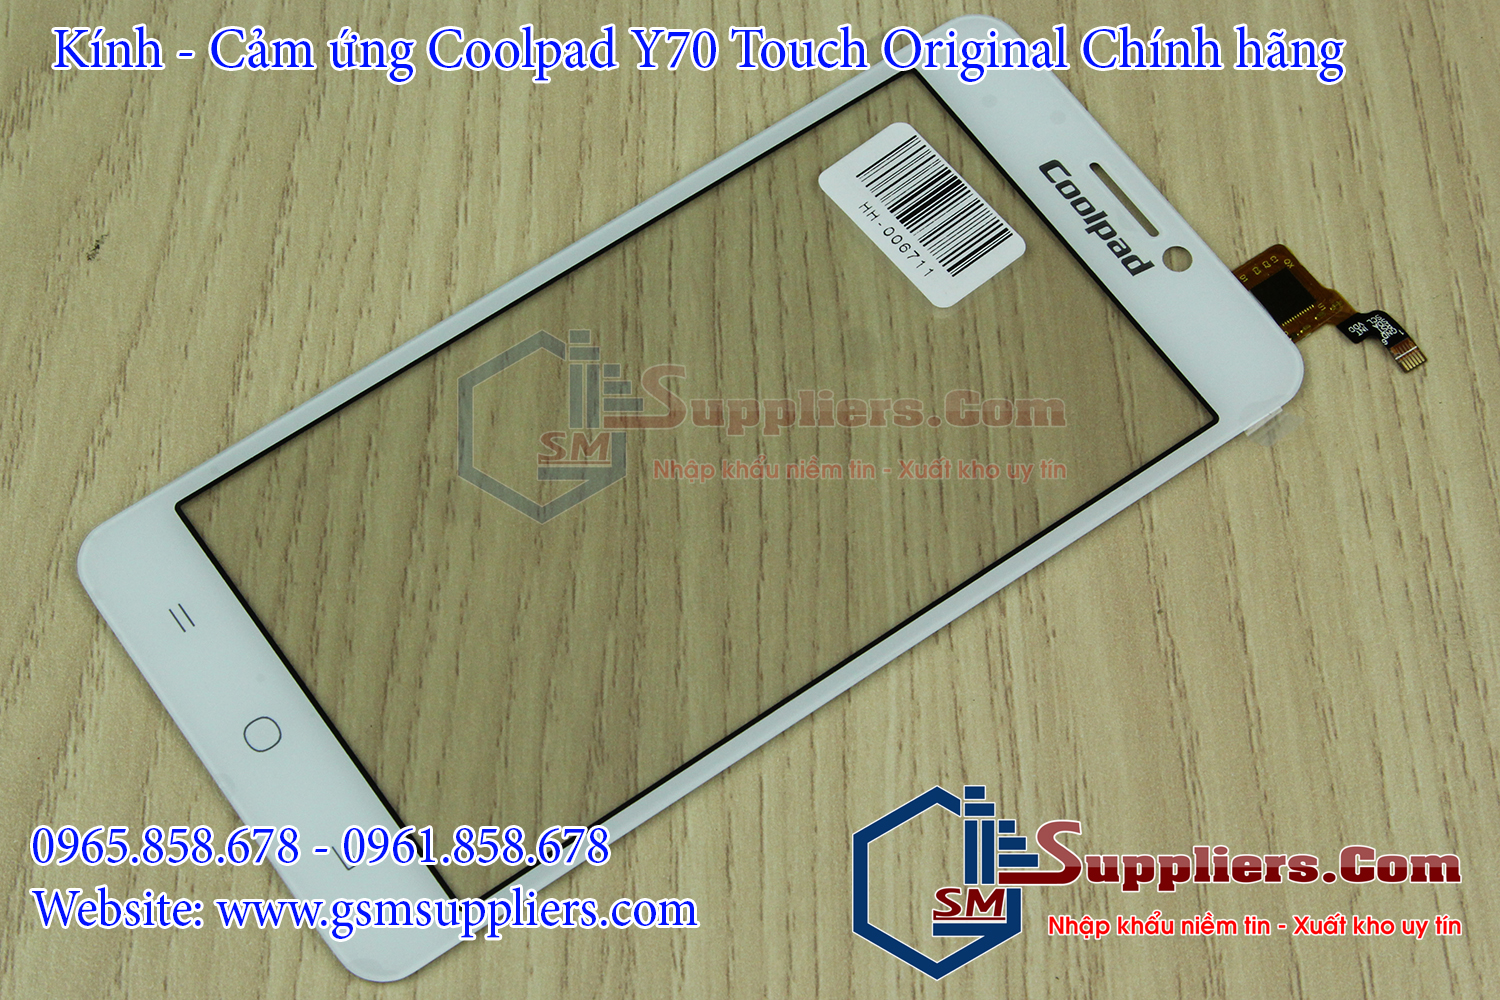 cam ung coolpad y70 hang chinh hang gia re tai ha noi 4